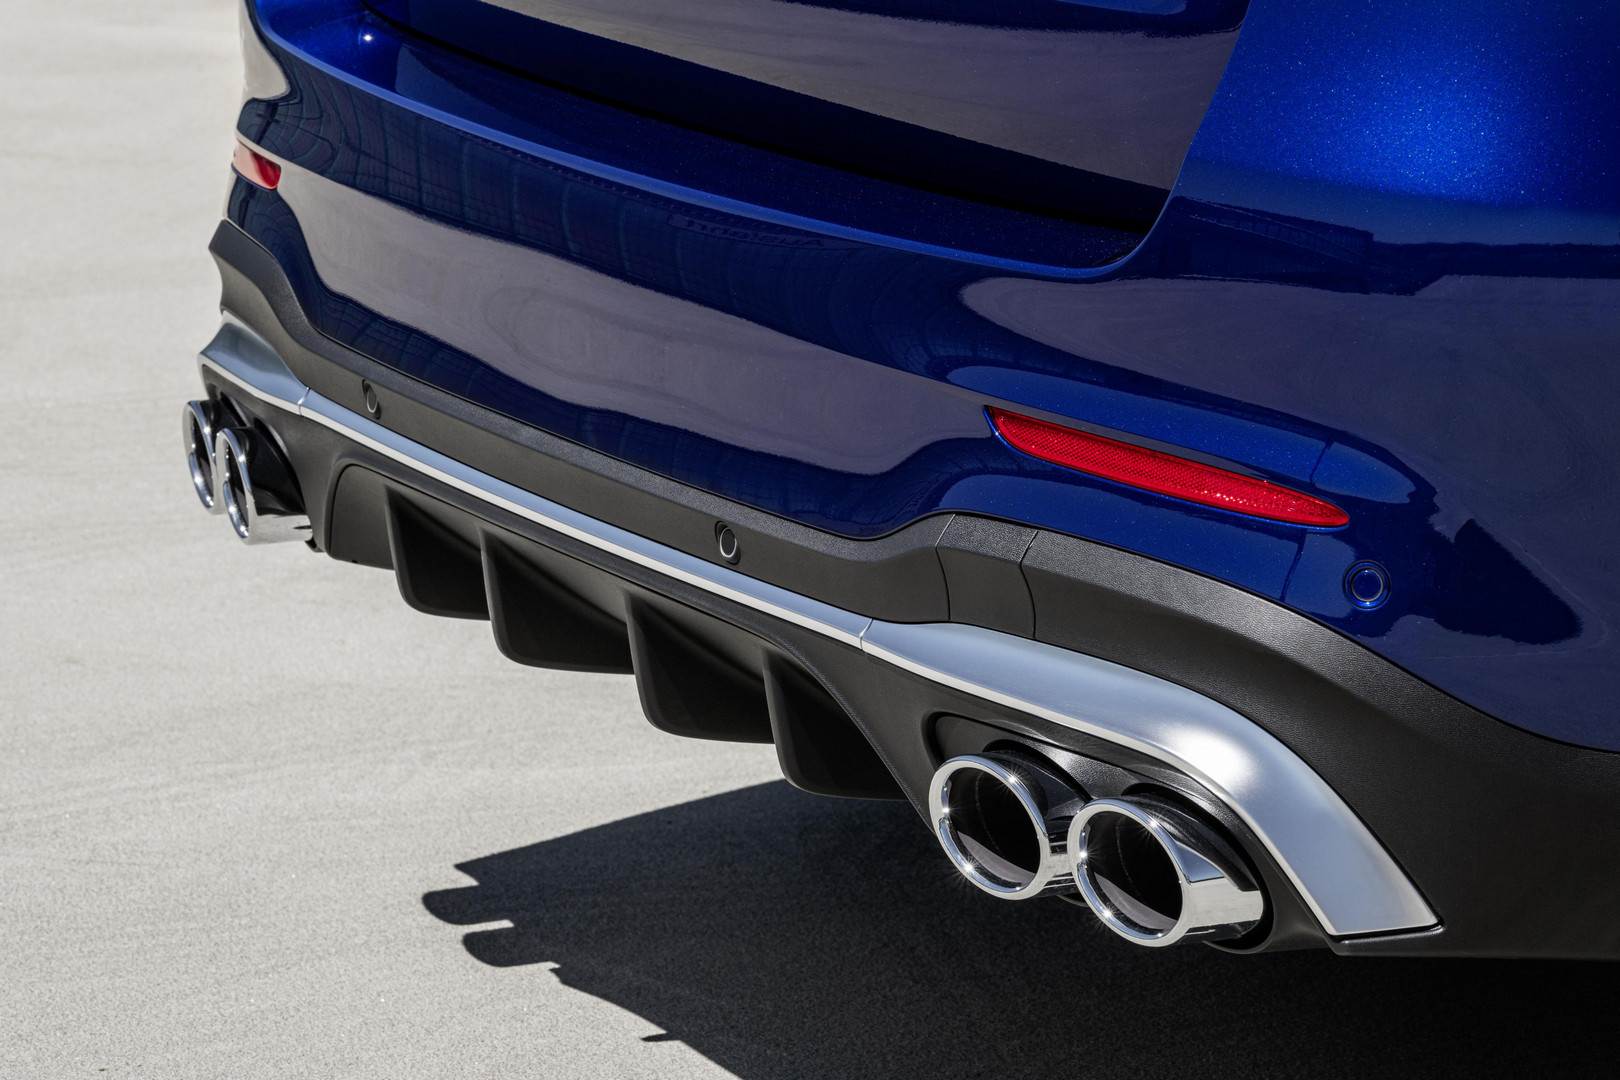 Mercedes-AMG GLC 43 SUV Exhaust Tips